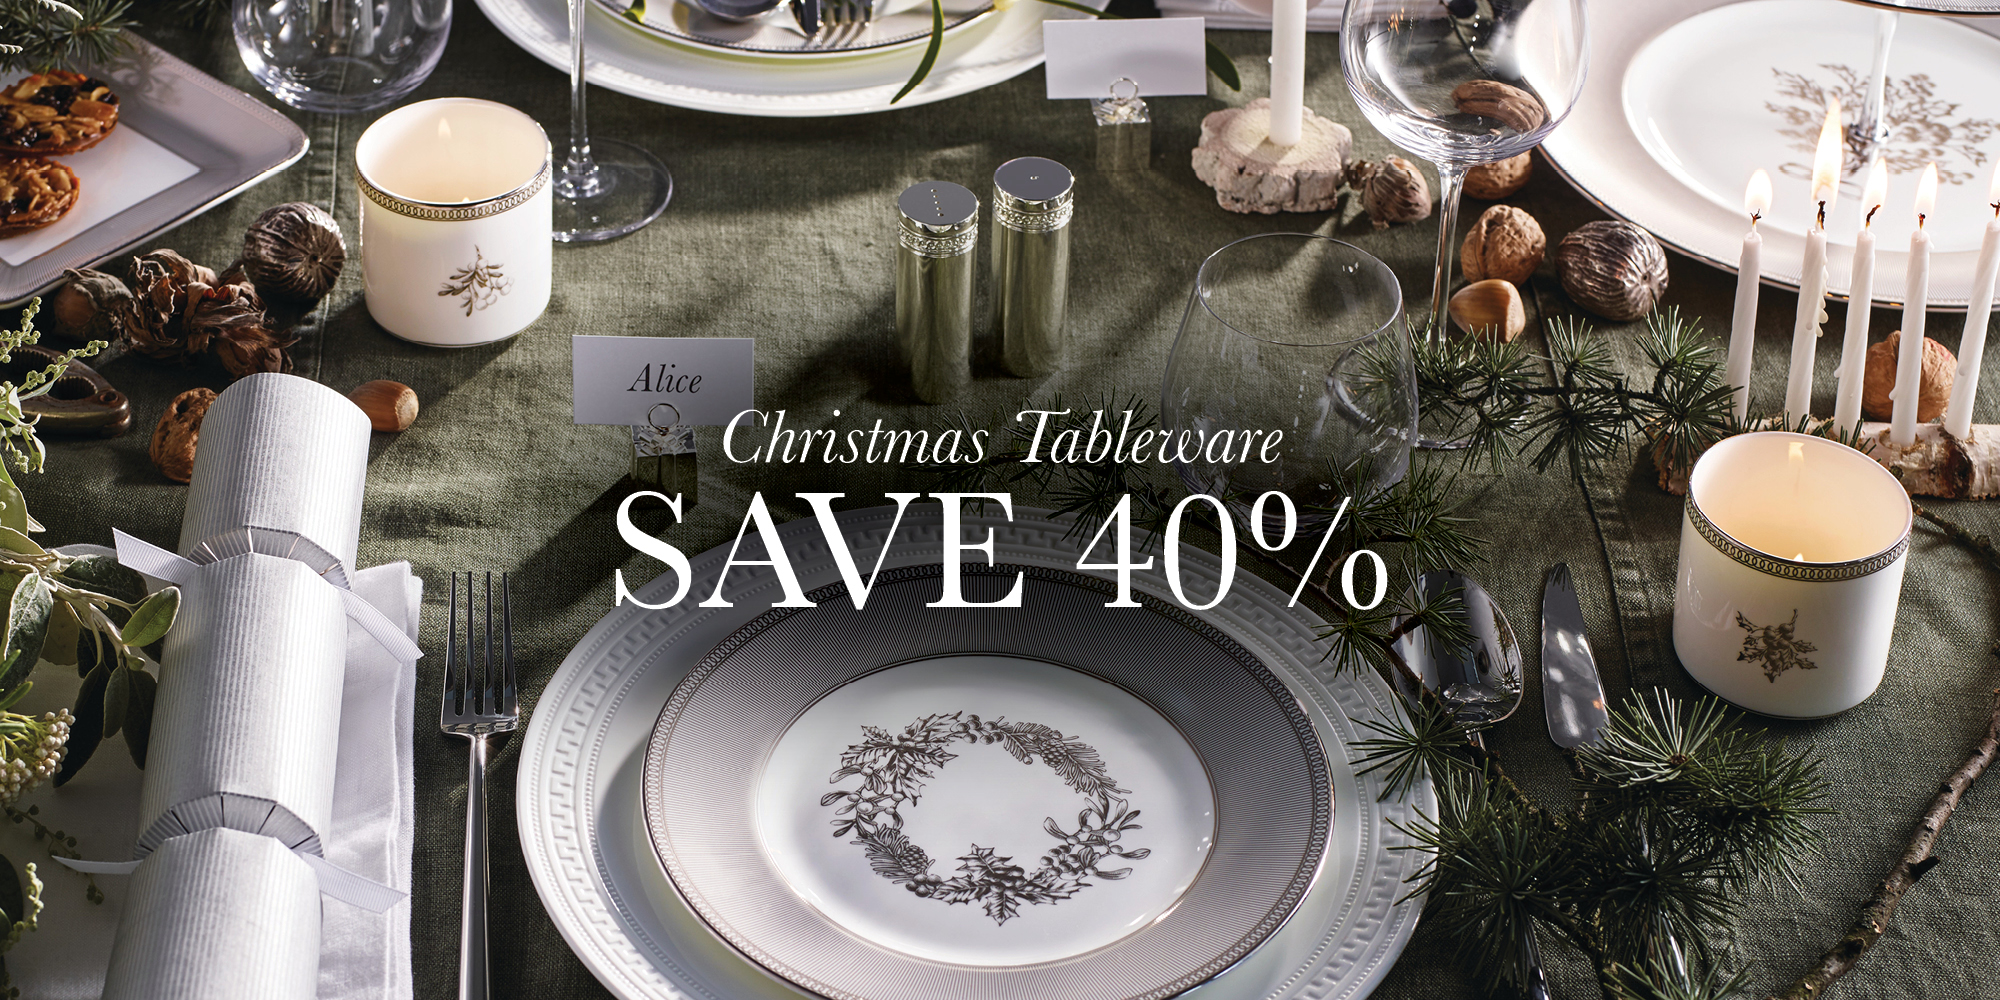 End of Year Sale Dec 18 Xmas Tableware